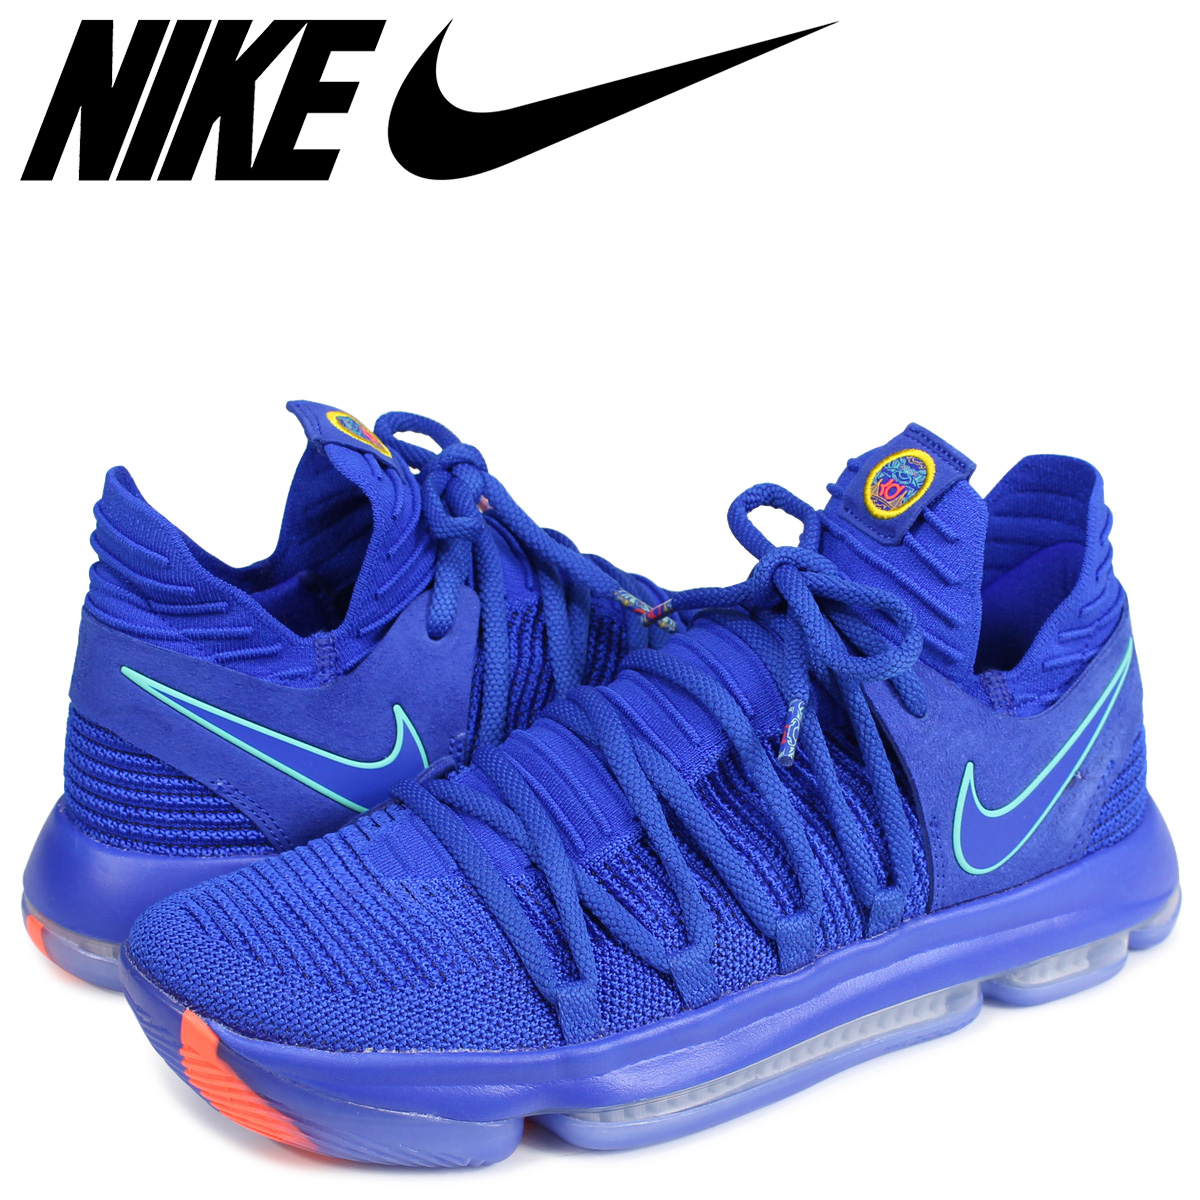 4e98e2bf89b3 ... basketball shoes df15c 95af1  coupon code for nike zoom kd 10 nike kd 10  sneakers men 897816 402 kevin durant